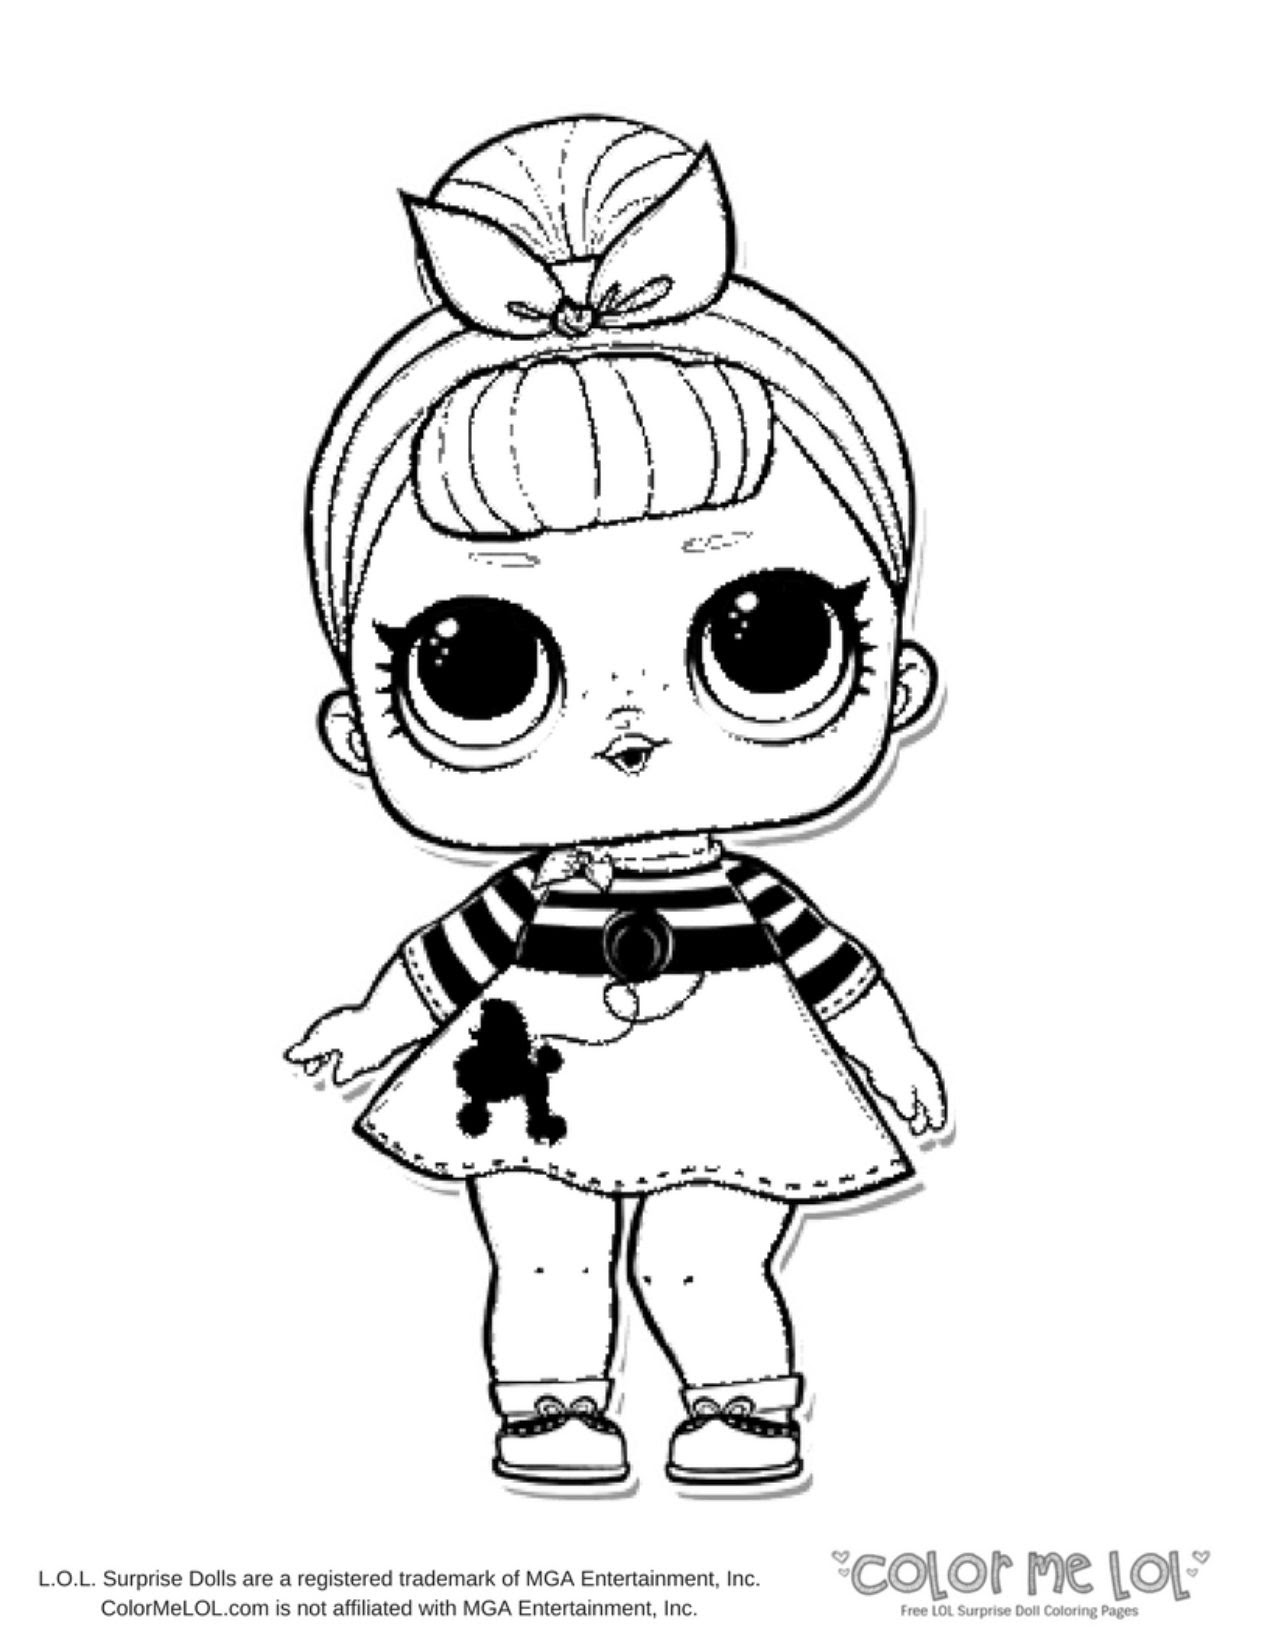 Coloring Pages Lol Dolls at GetColorings.com | Free ...